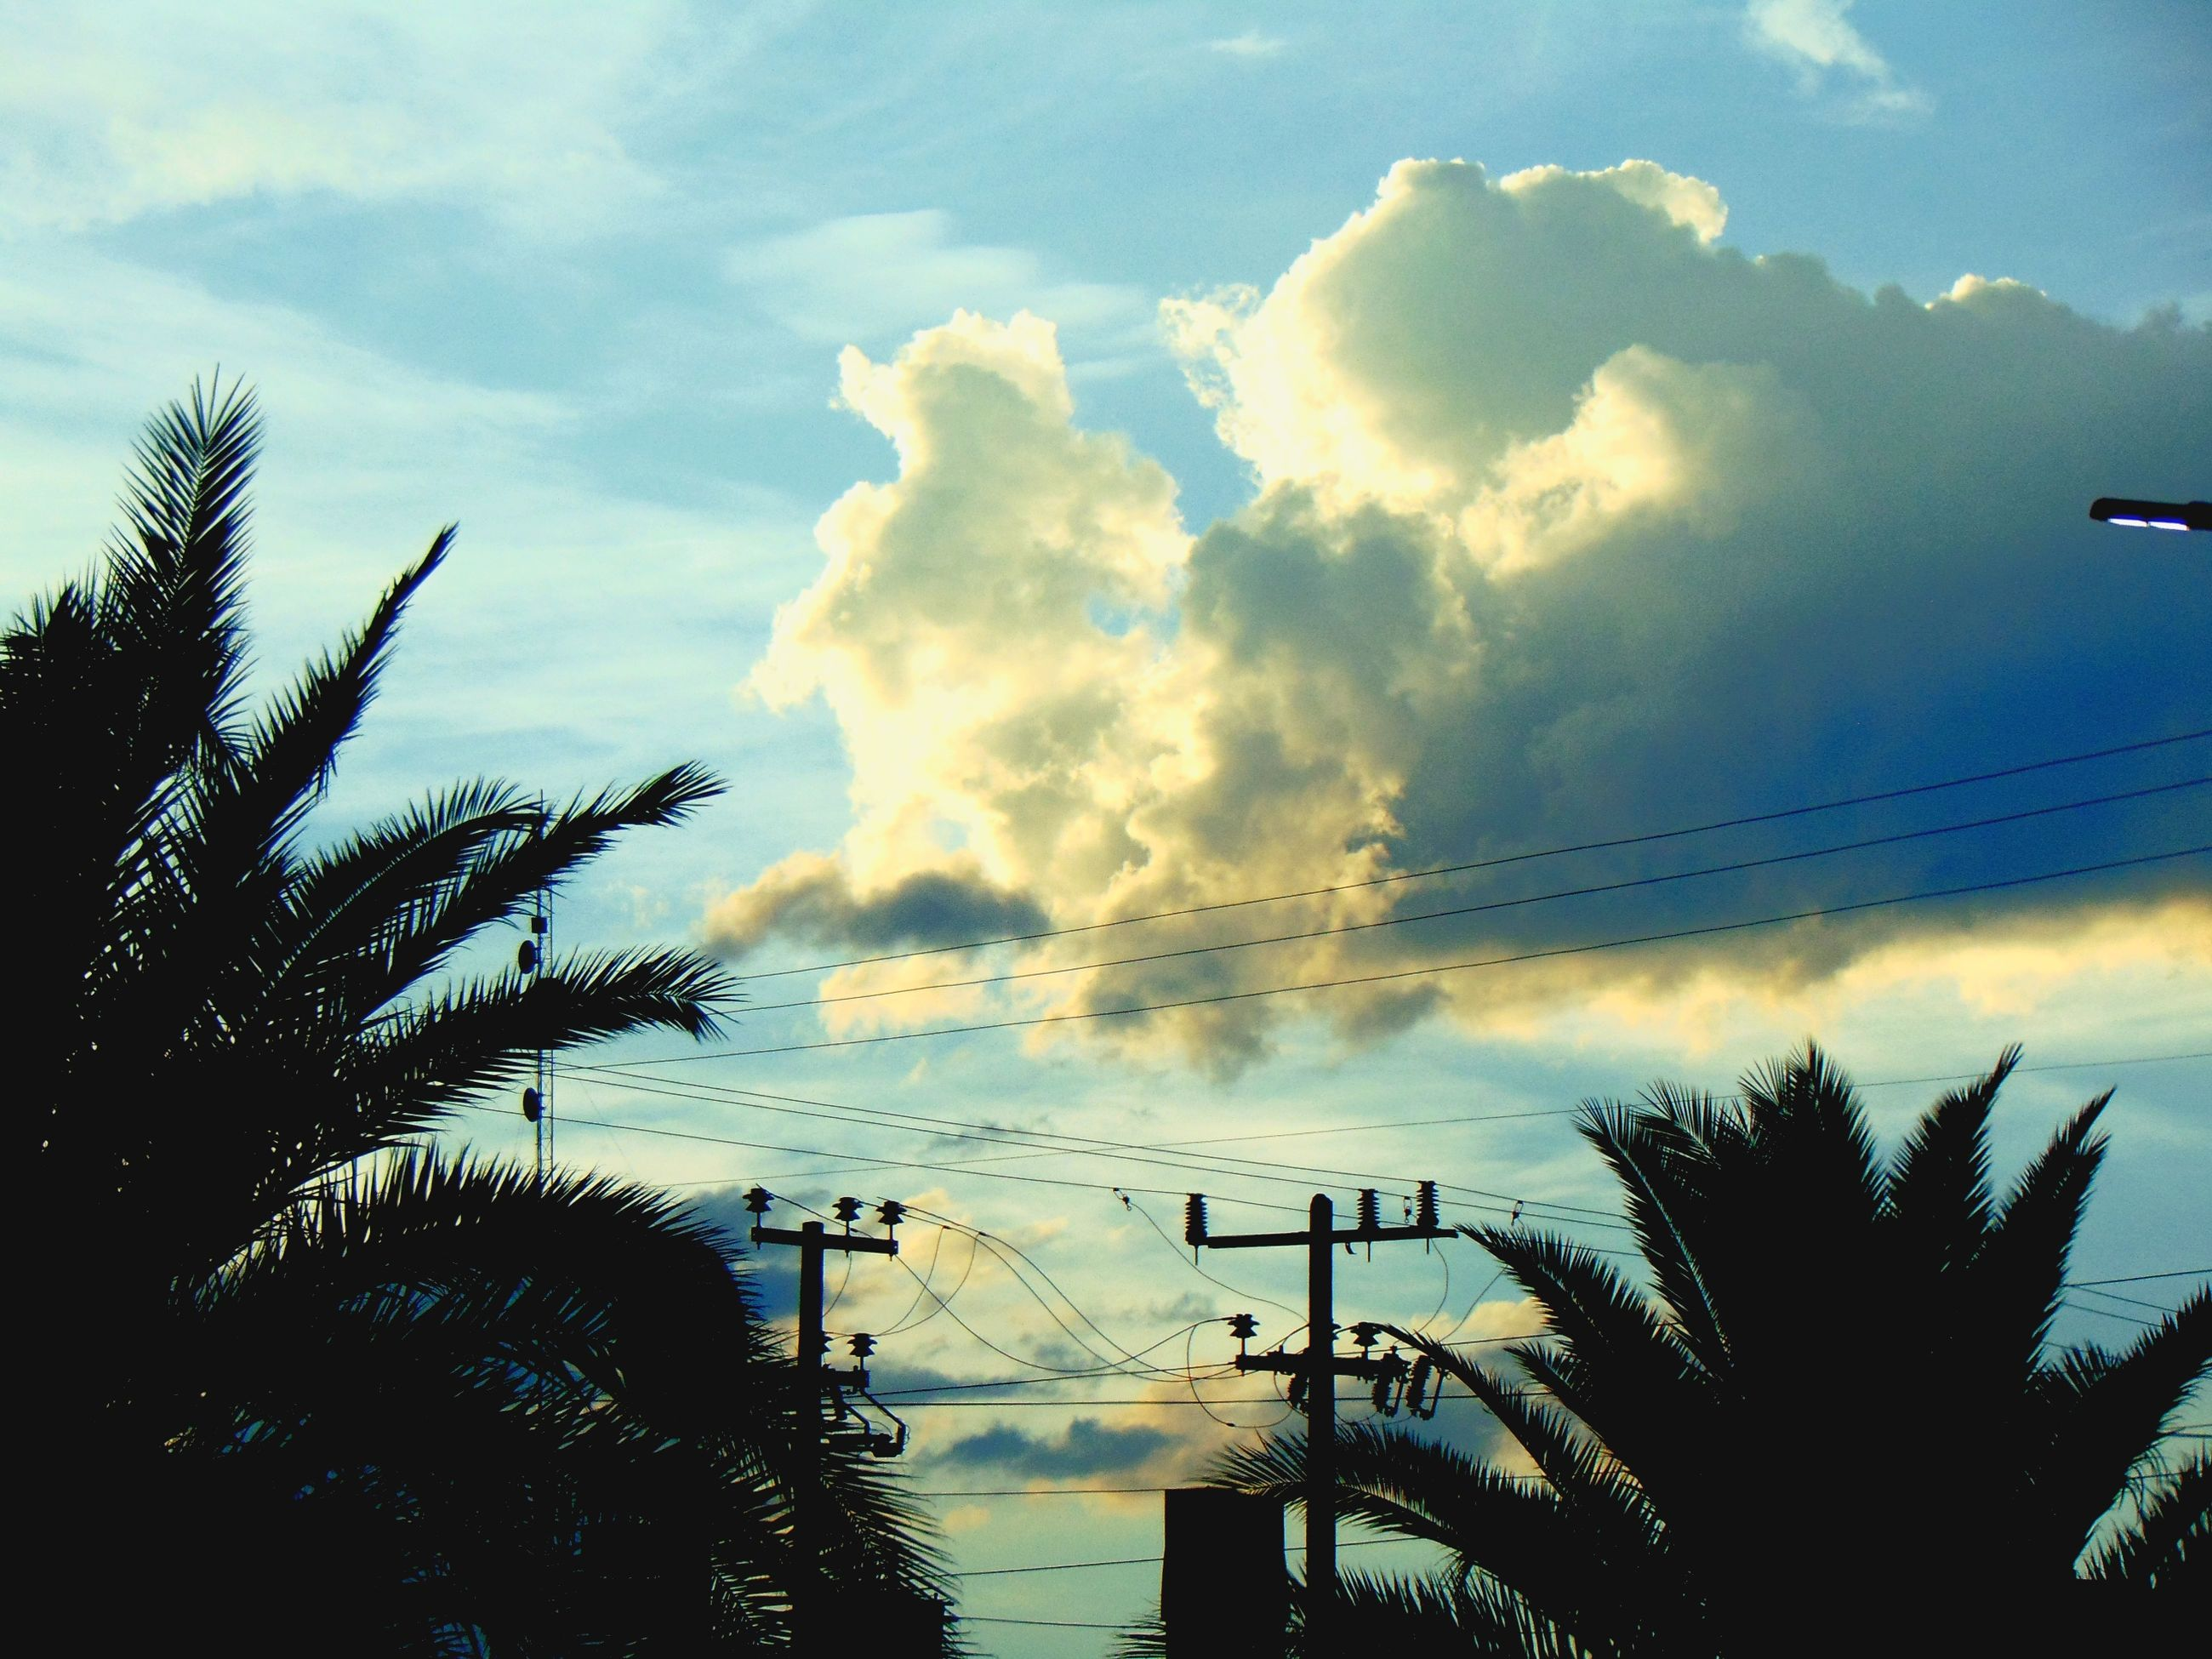 sky, cloud - sky, silhouette, cloudy, tree, sunset, cloud, tranquility, low angle view, scenics, beauty in nature, nature, power line, tranquil scene, weather, dusk, electricity pylon, overcast, dramatic sky, electricity